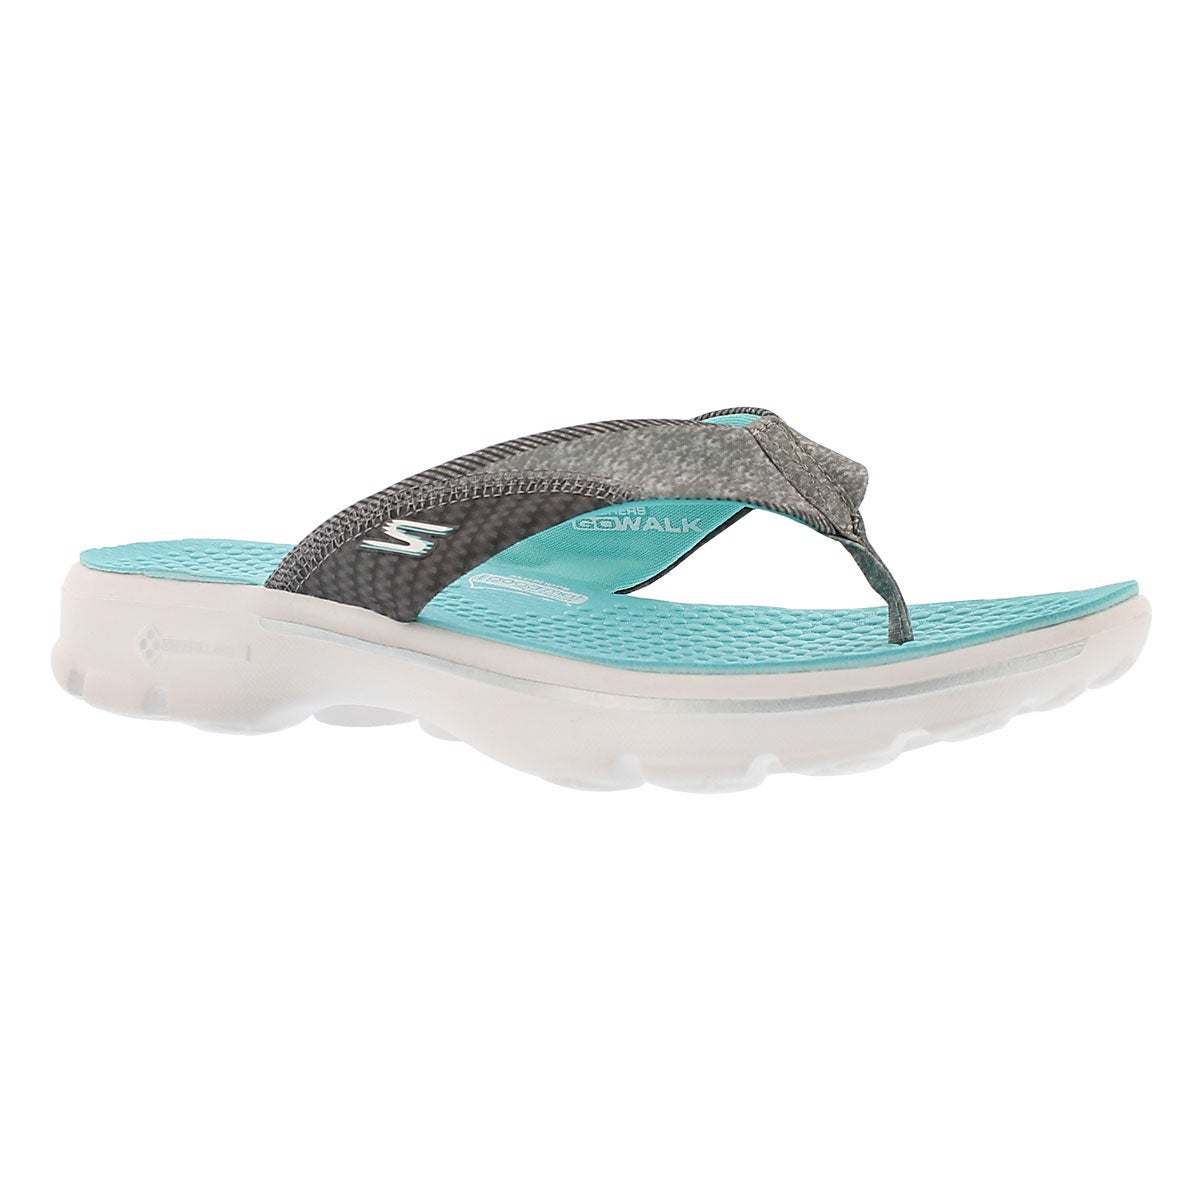 Women's PIZAZZ aqua thongs sandals